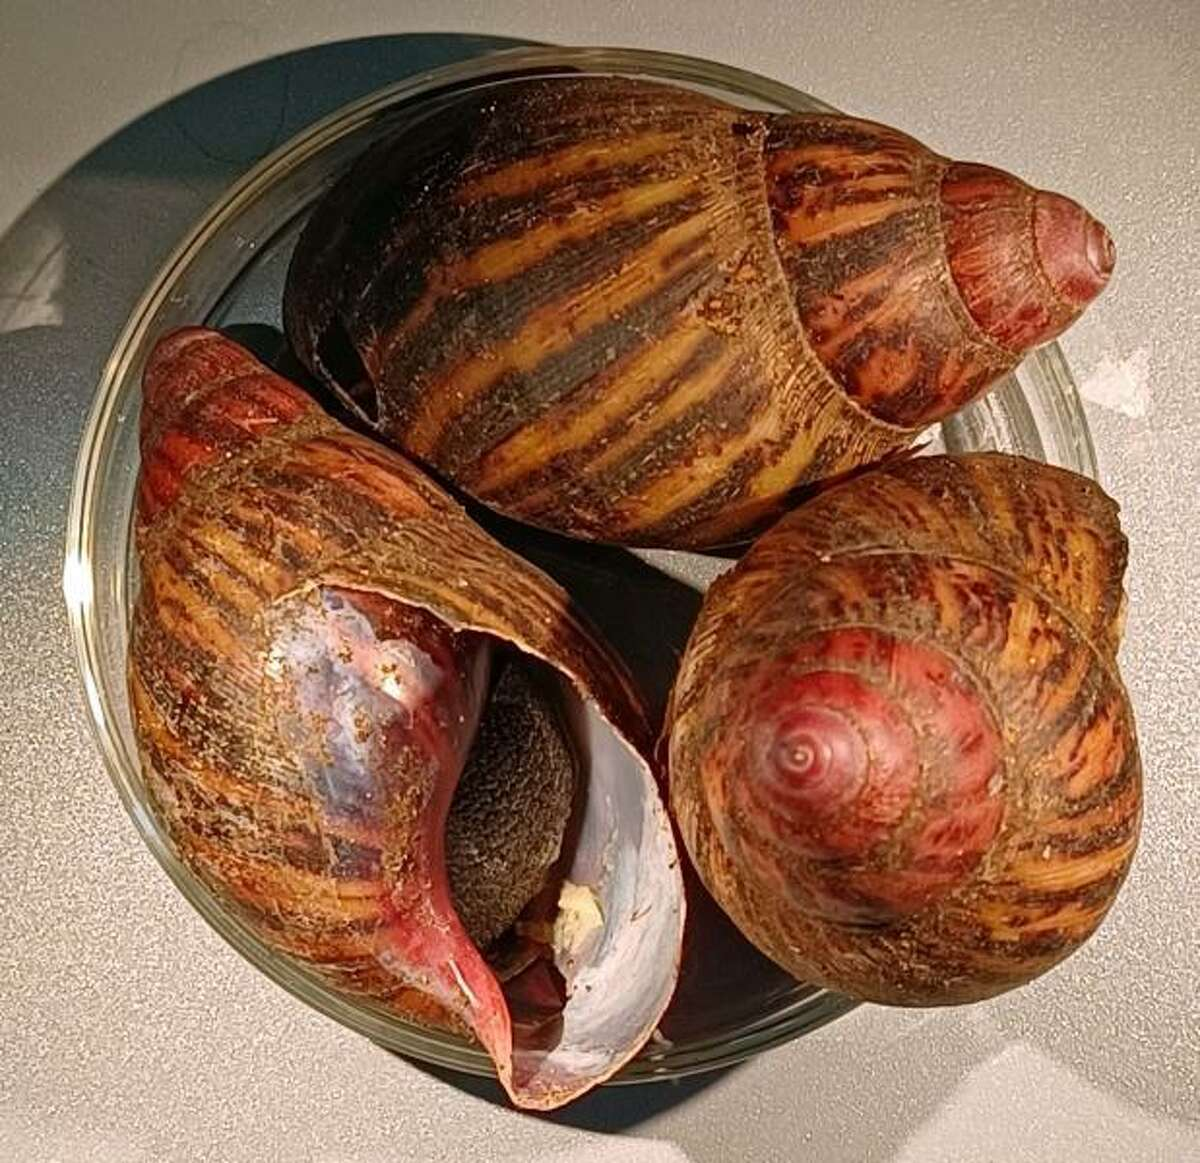 These snails were seized from a passenger's luggage at IAH in July.